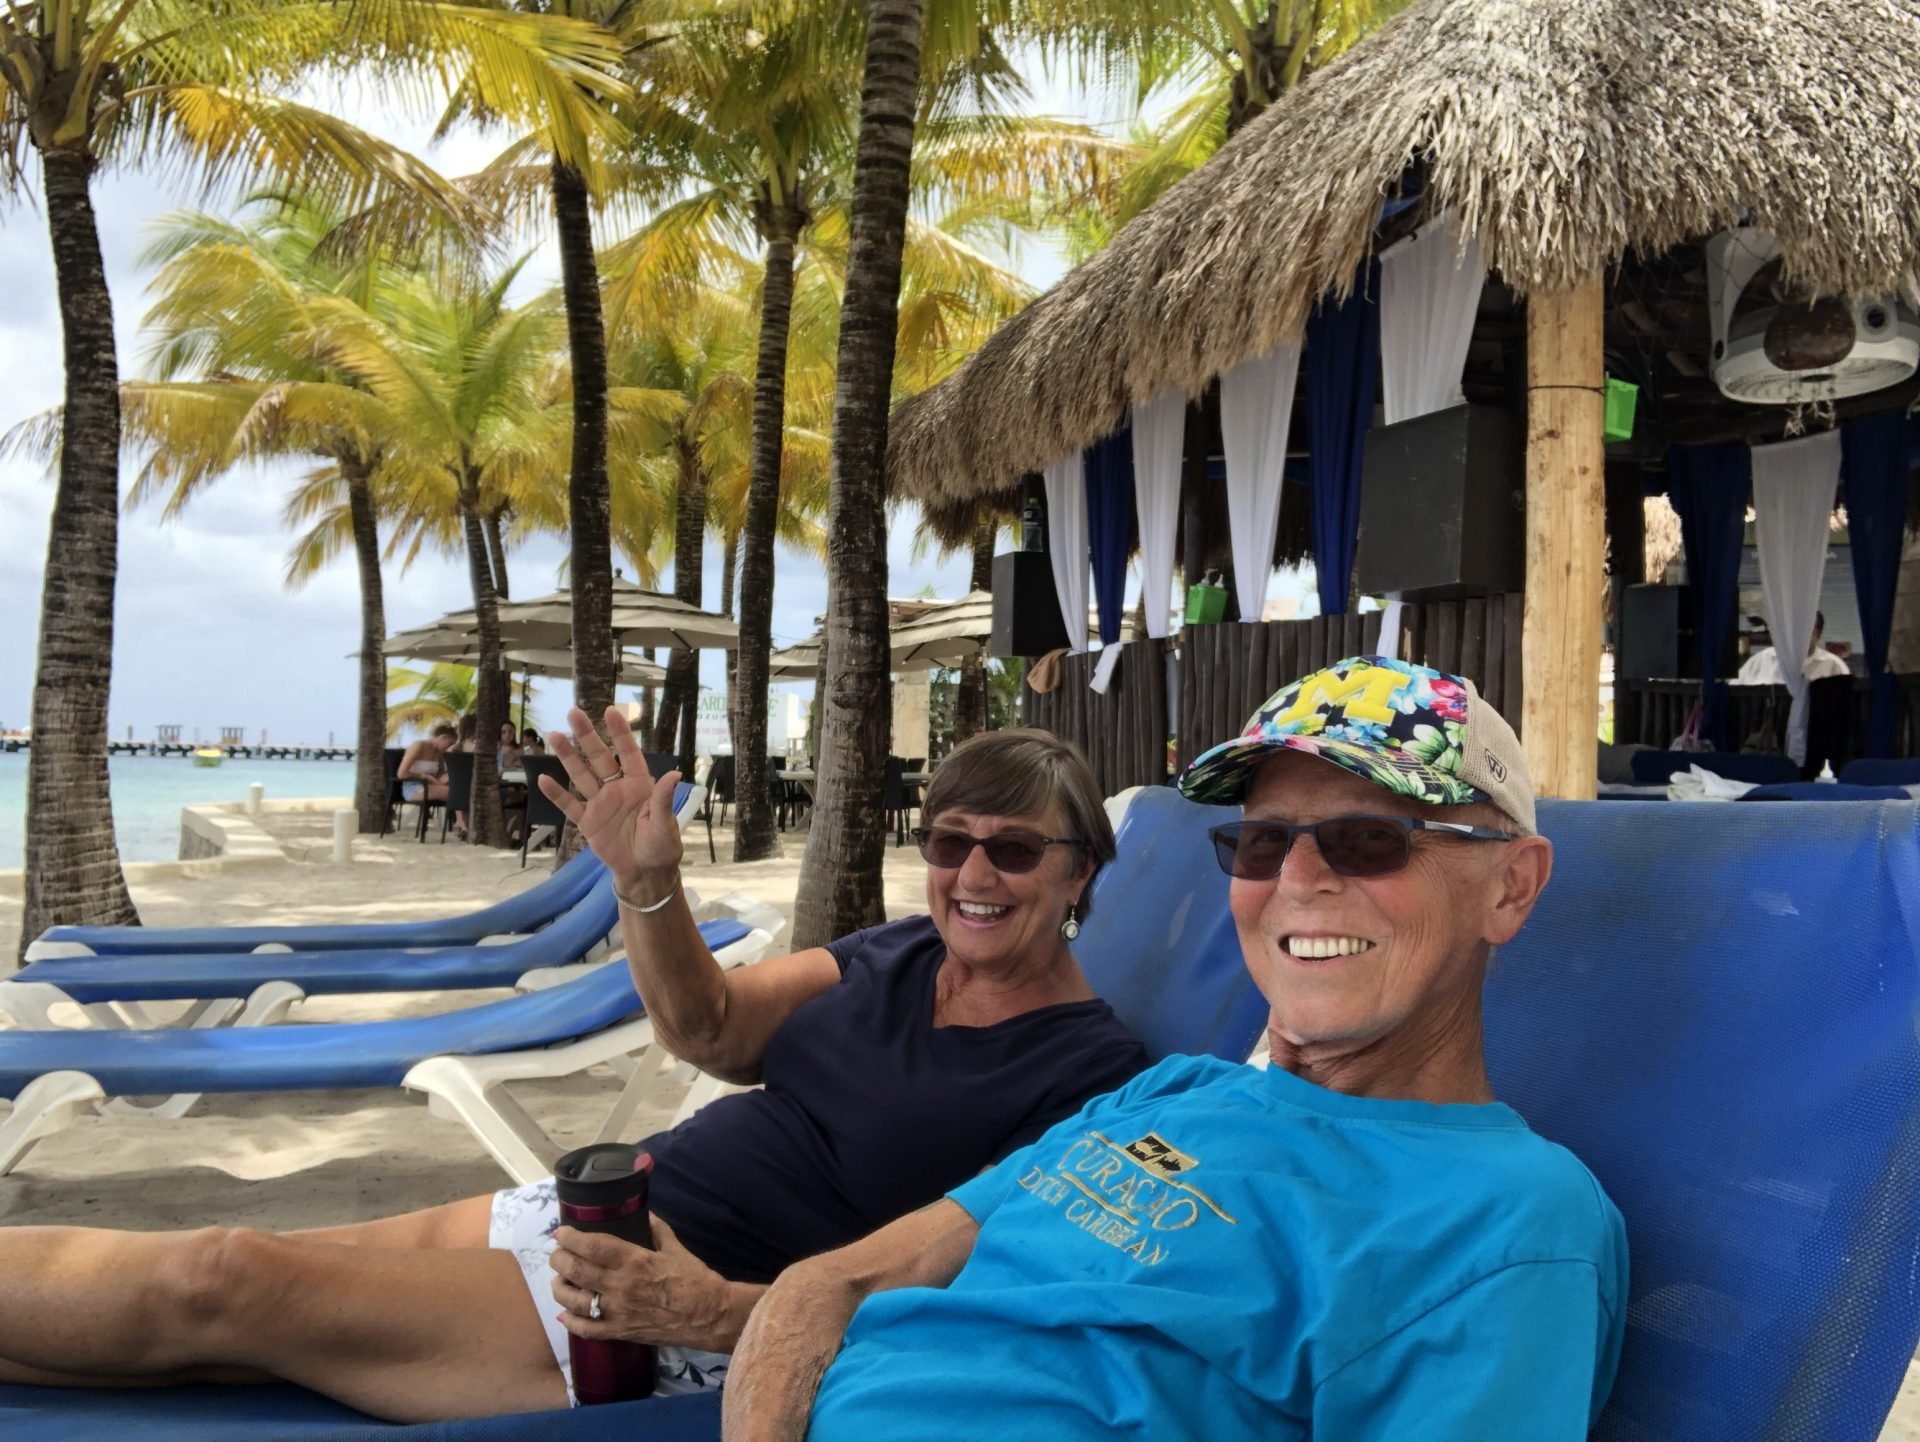 This is how I hope everyone remembers Larry.  We enjoyed our time together so much!  He loved cruising and you could find us any place in the Caribbean at any times!